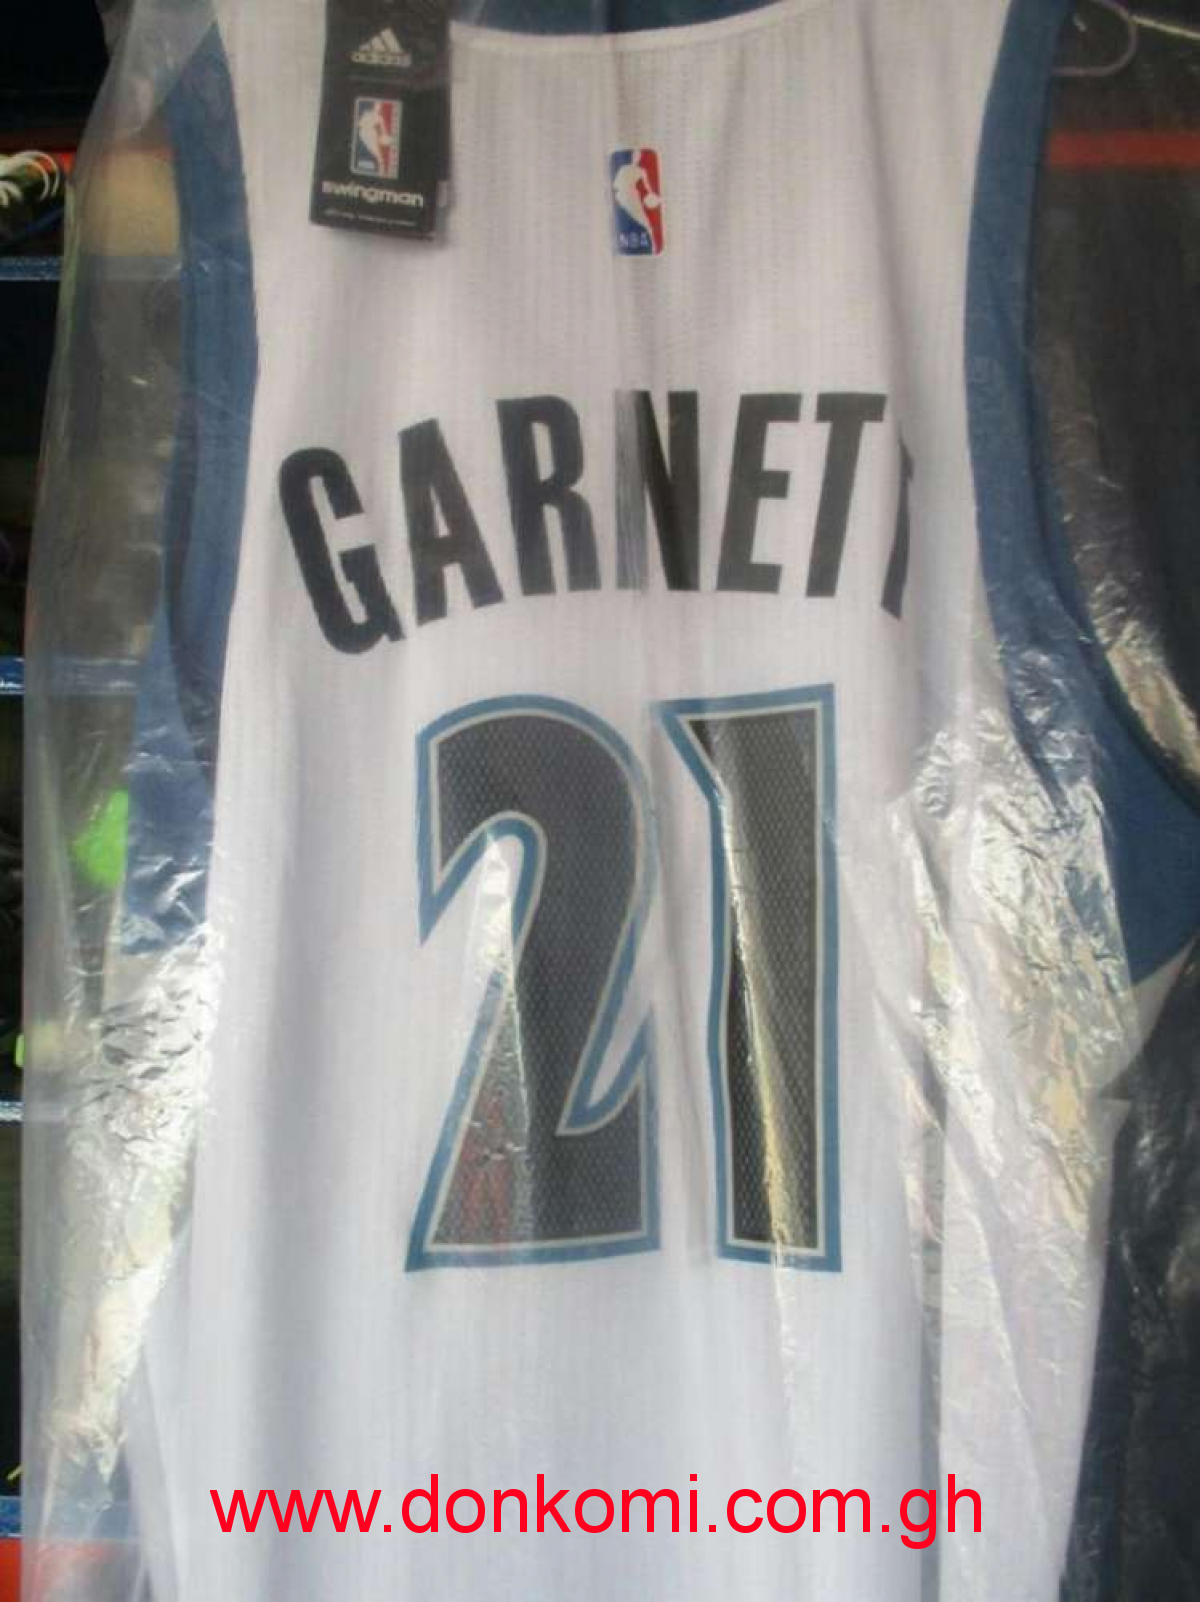 KG NBA Basketball Jersey